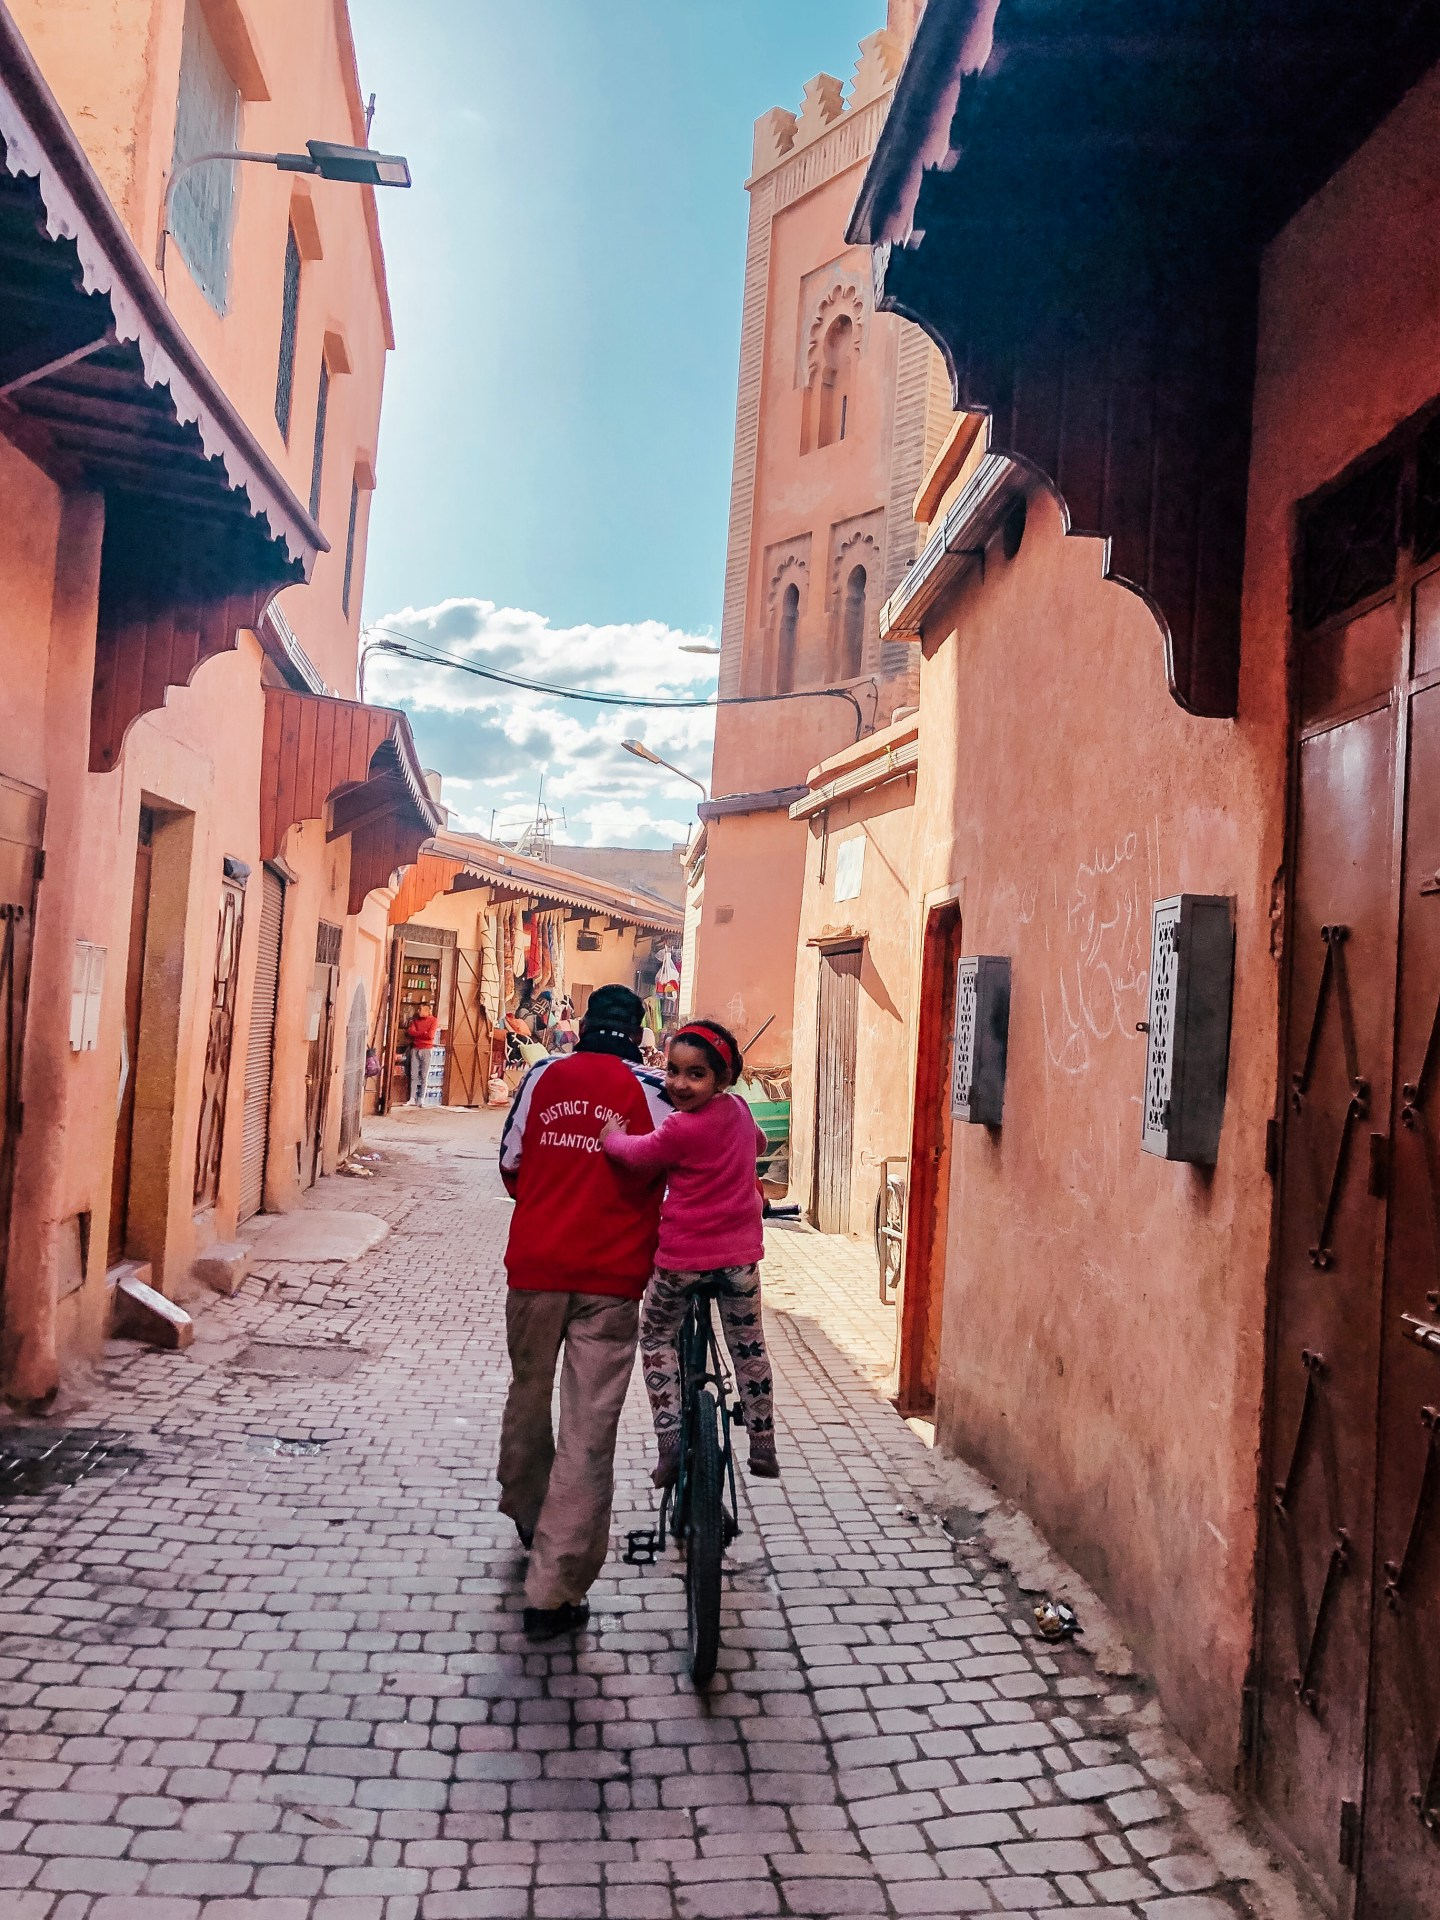 A sweet little girl biking through the Old City with her Dad